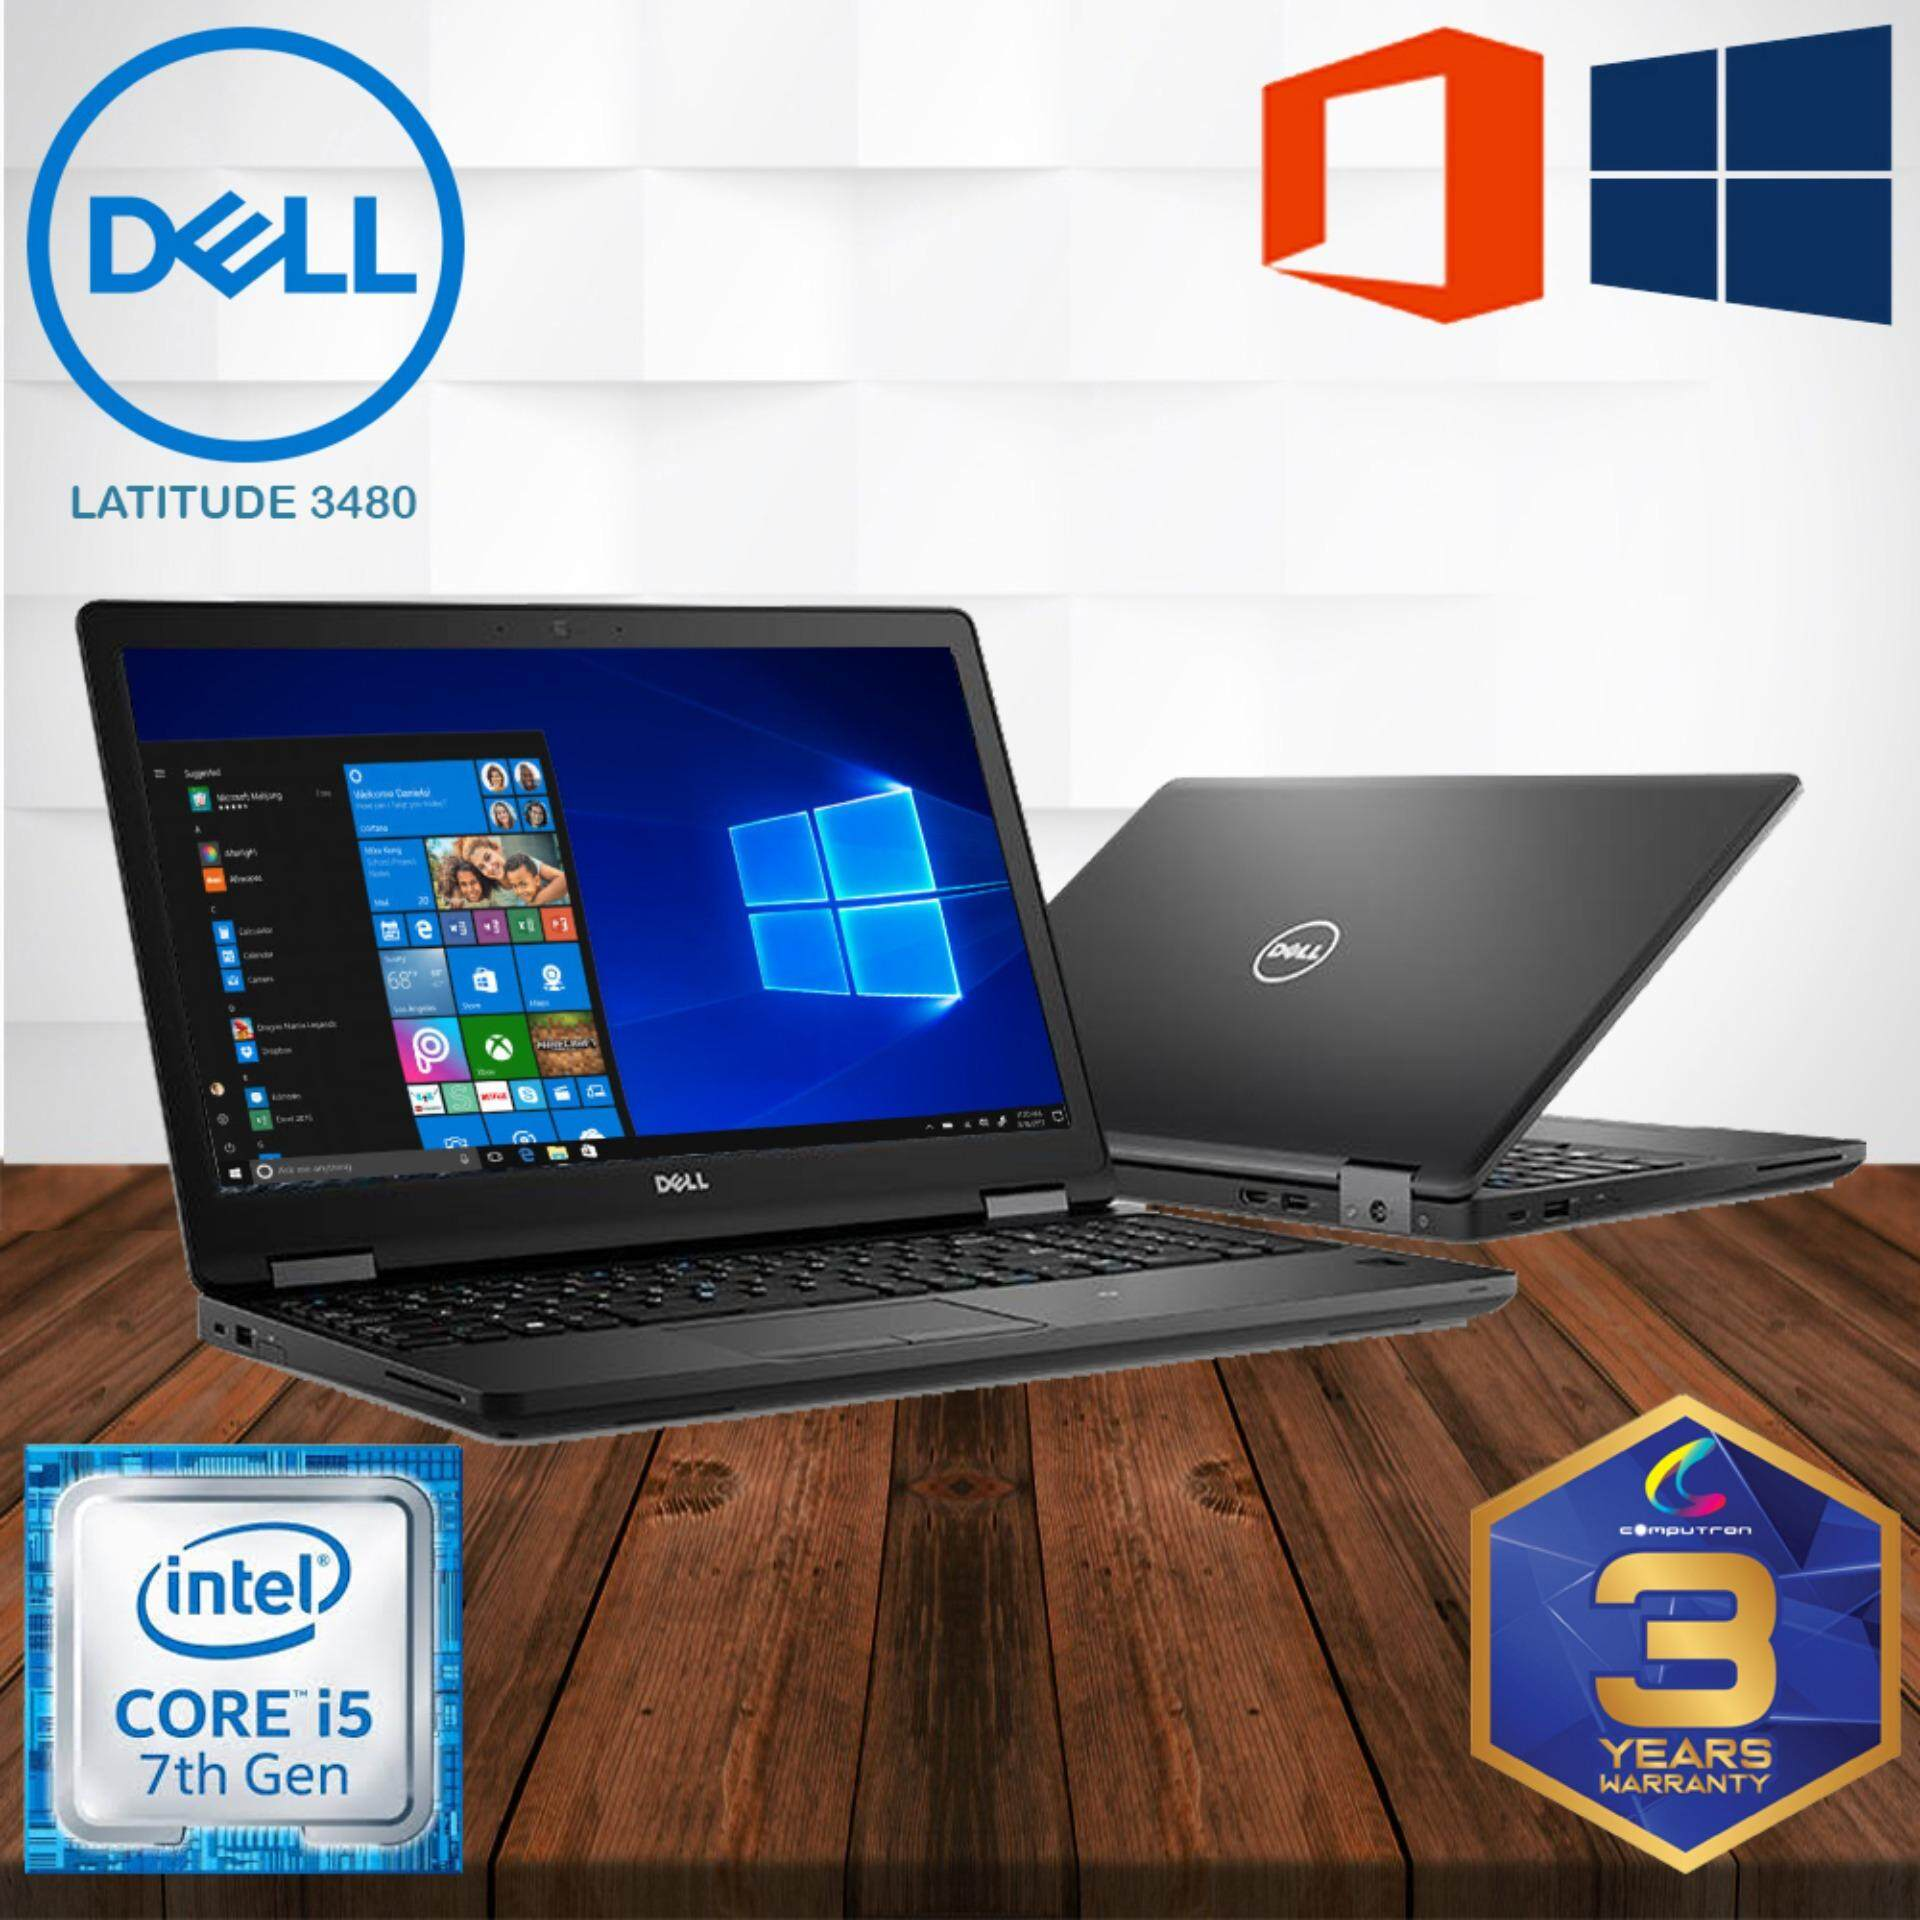 DELL LATITUDE 3480 SLIM [ CORE I5 7TH GENERATION/ 8GB DDR4/ 500GB HDD/ LAPTOP ] 3 YEAR WARRANTY Malaysia